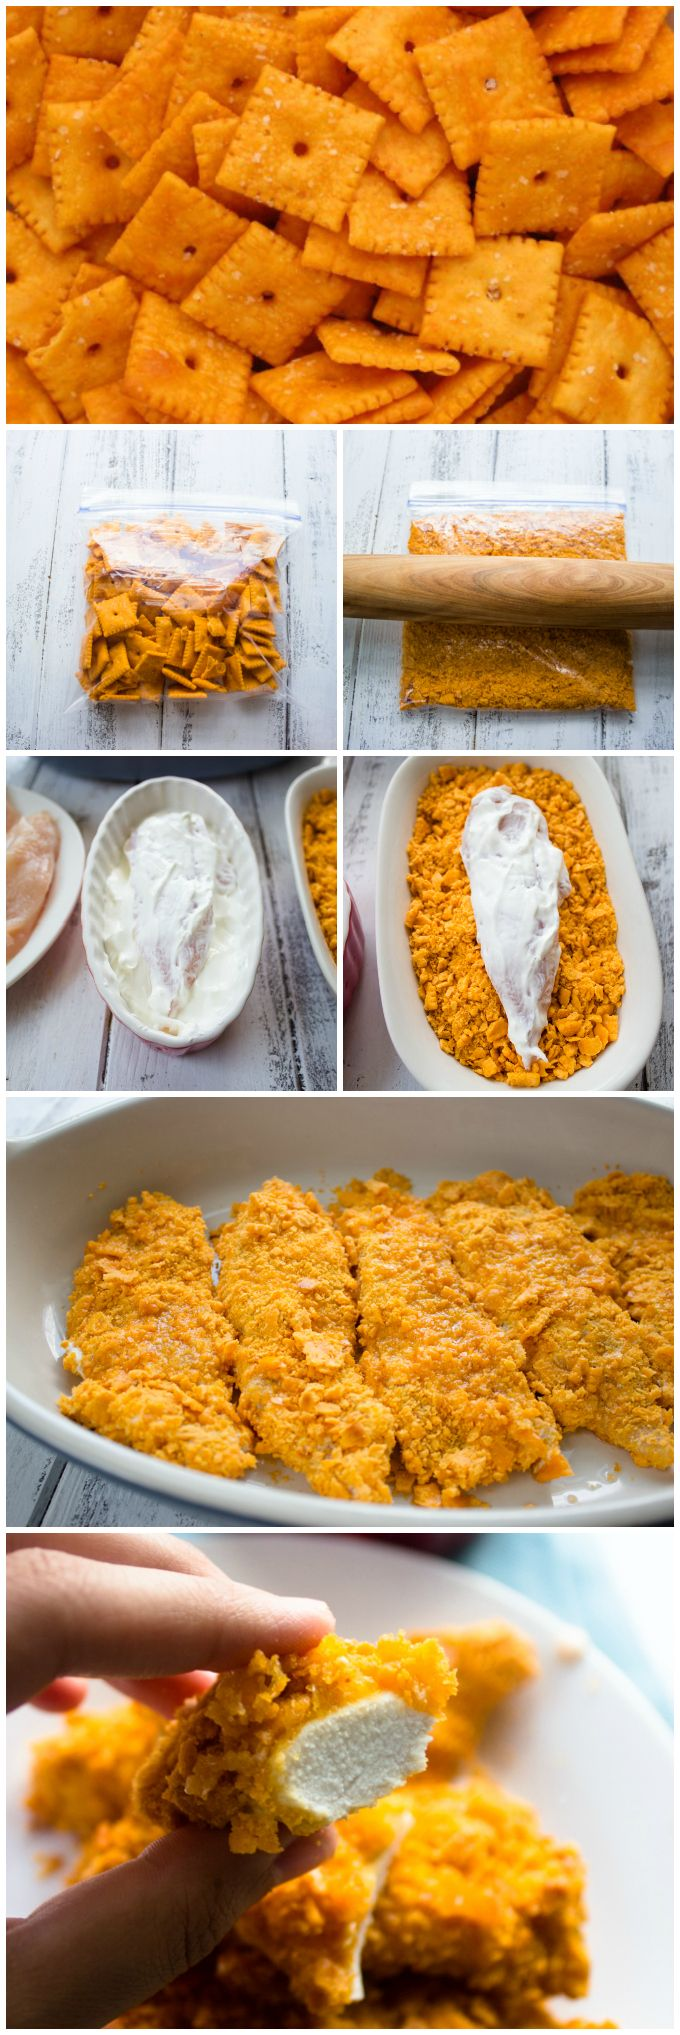 Cheese Nips Crusted Chicken Tenders Great idea for those left over preschool snacks!